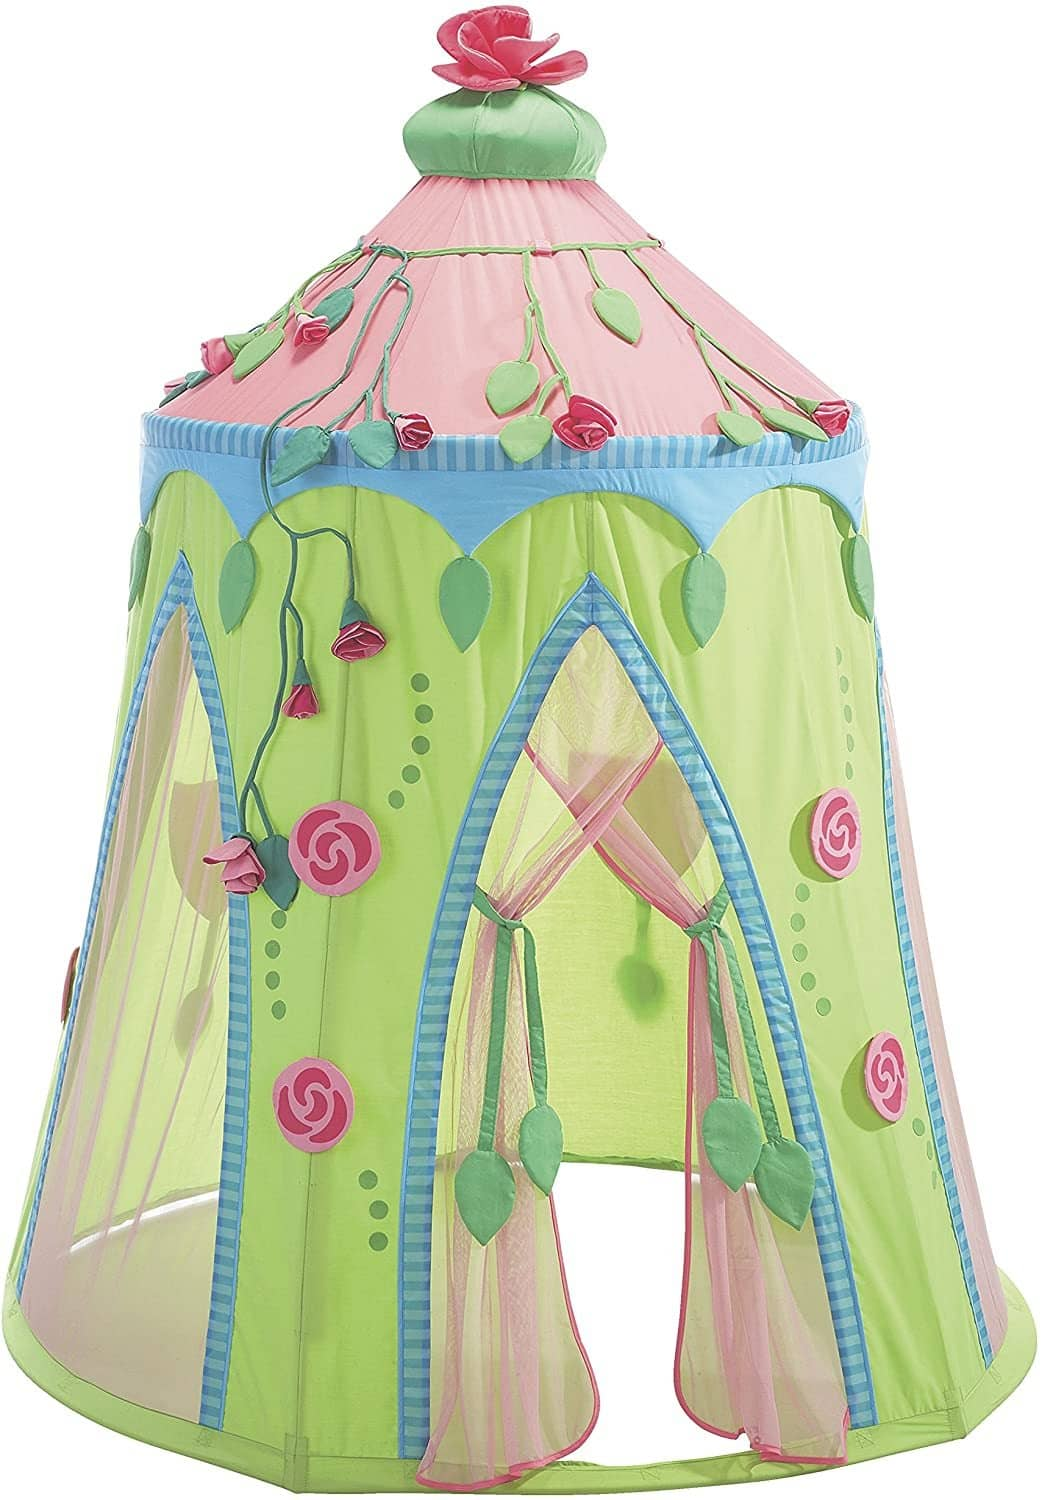 Rose Fairy Roomy Indoor Play Tent - Stands 75 Inches Tall-Kidding Around NYC